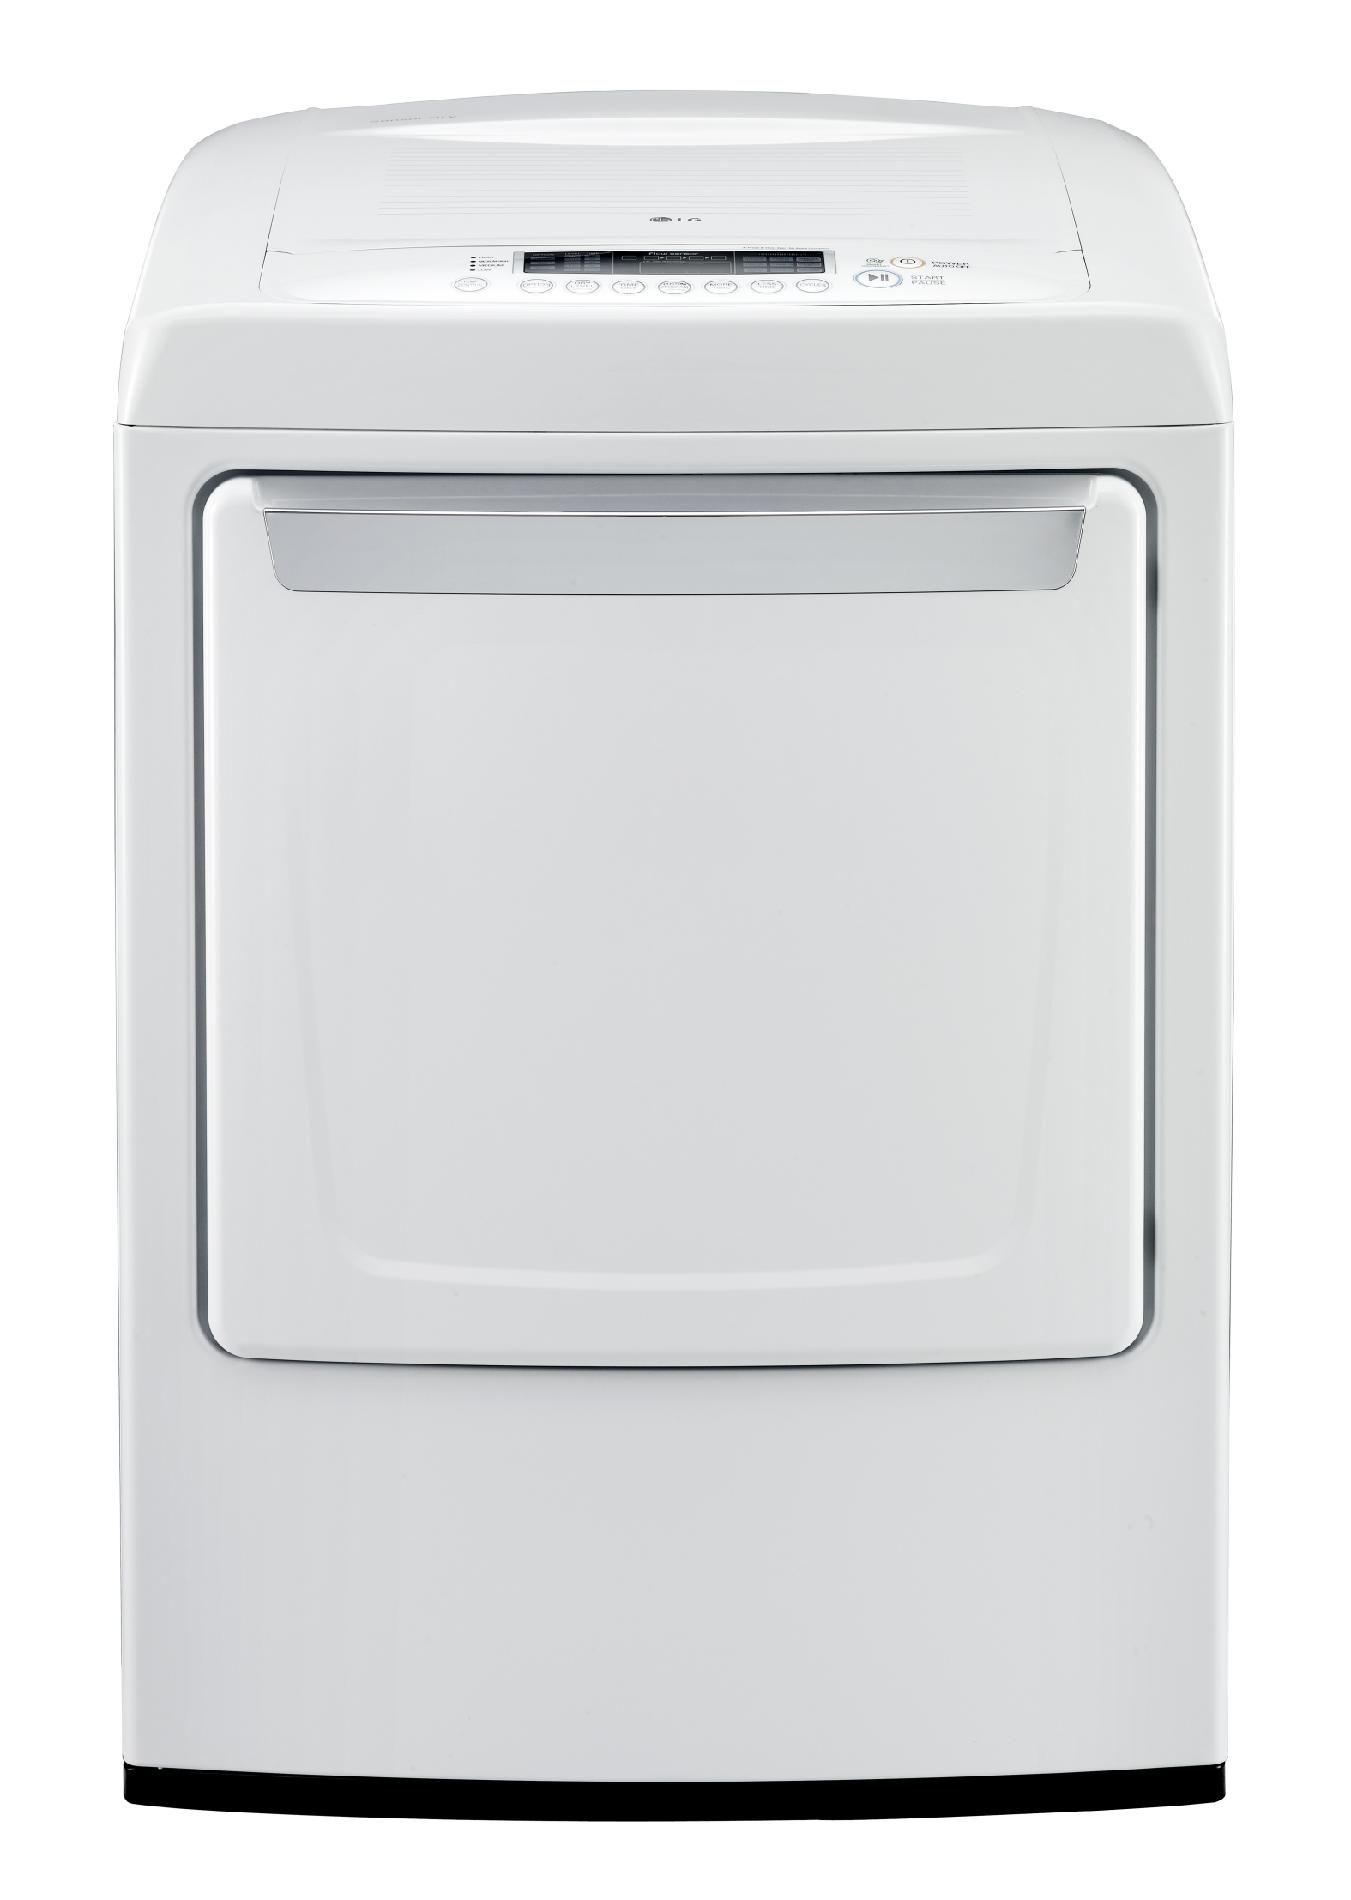 7.3 cu. ft. Electric Dryer - White